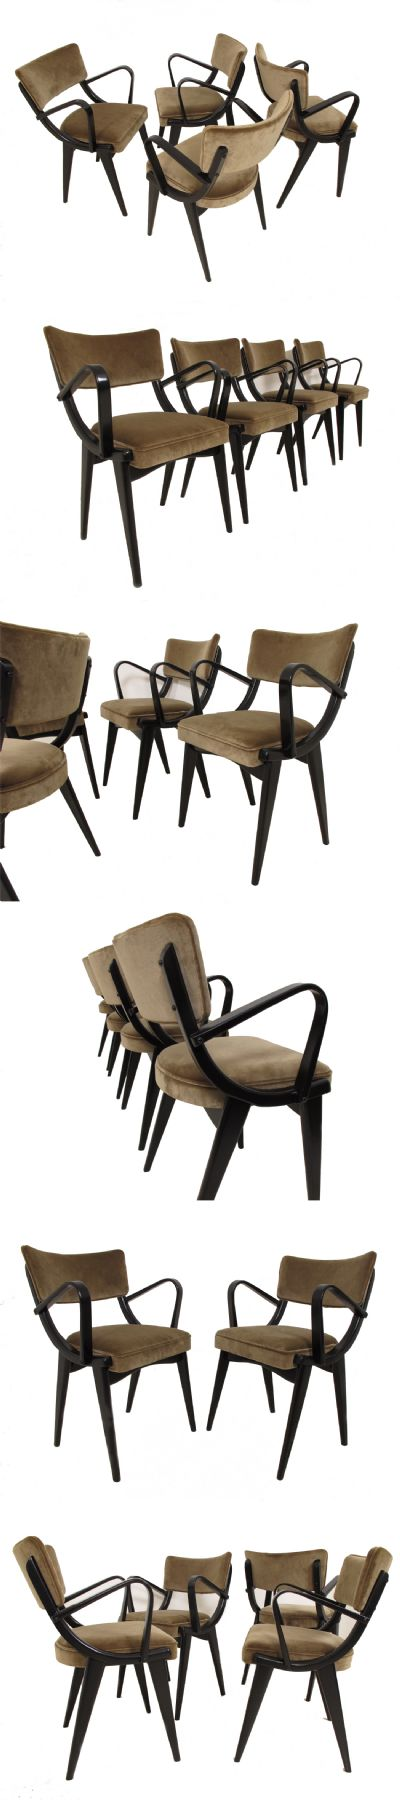 A set of four ebonised chairs c1960s. Manufactured by Ben chairs Ltd